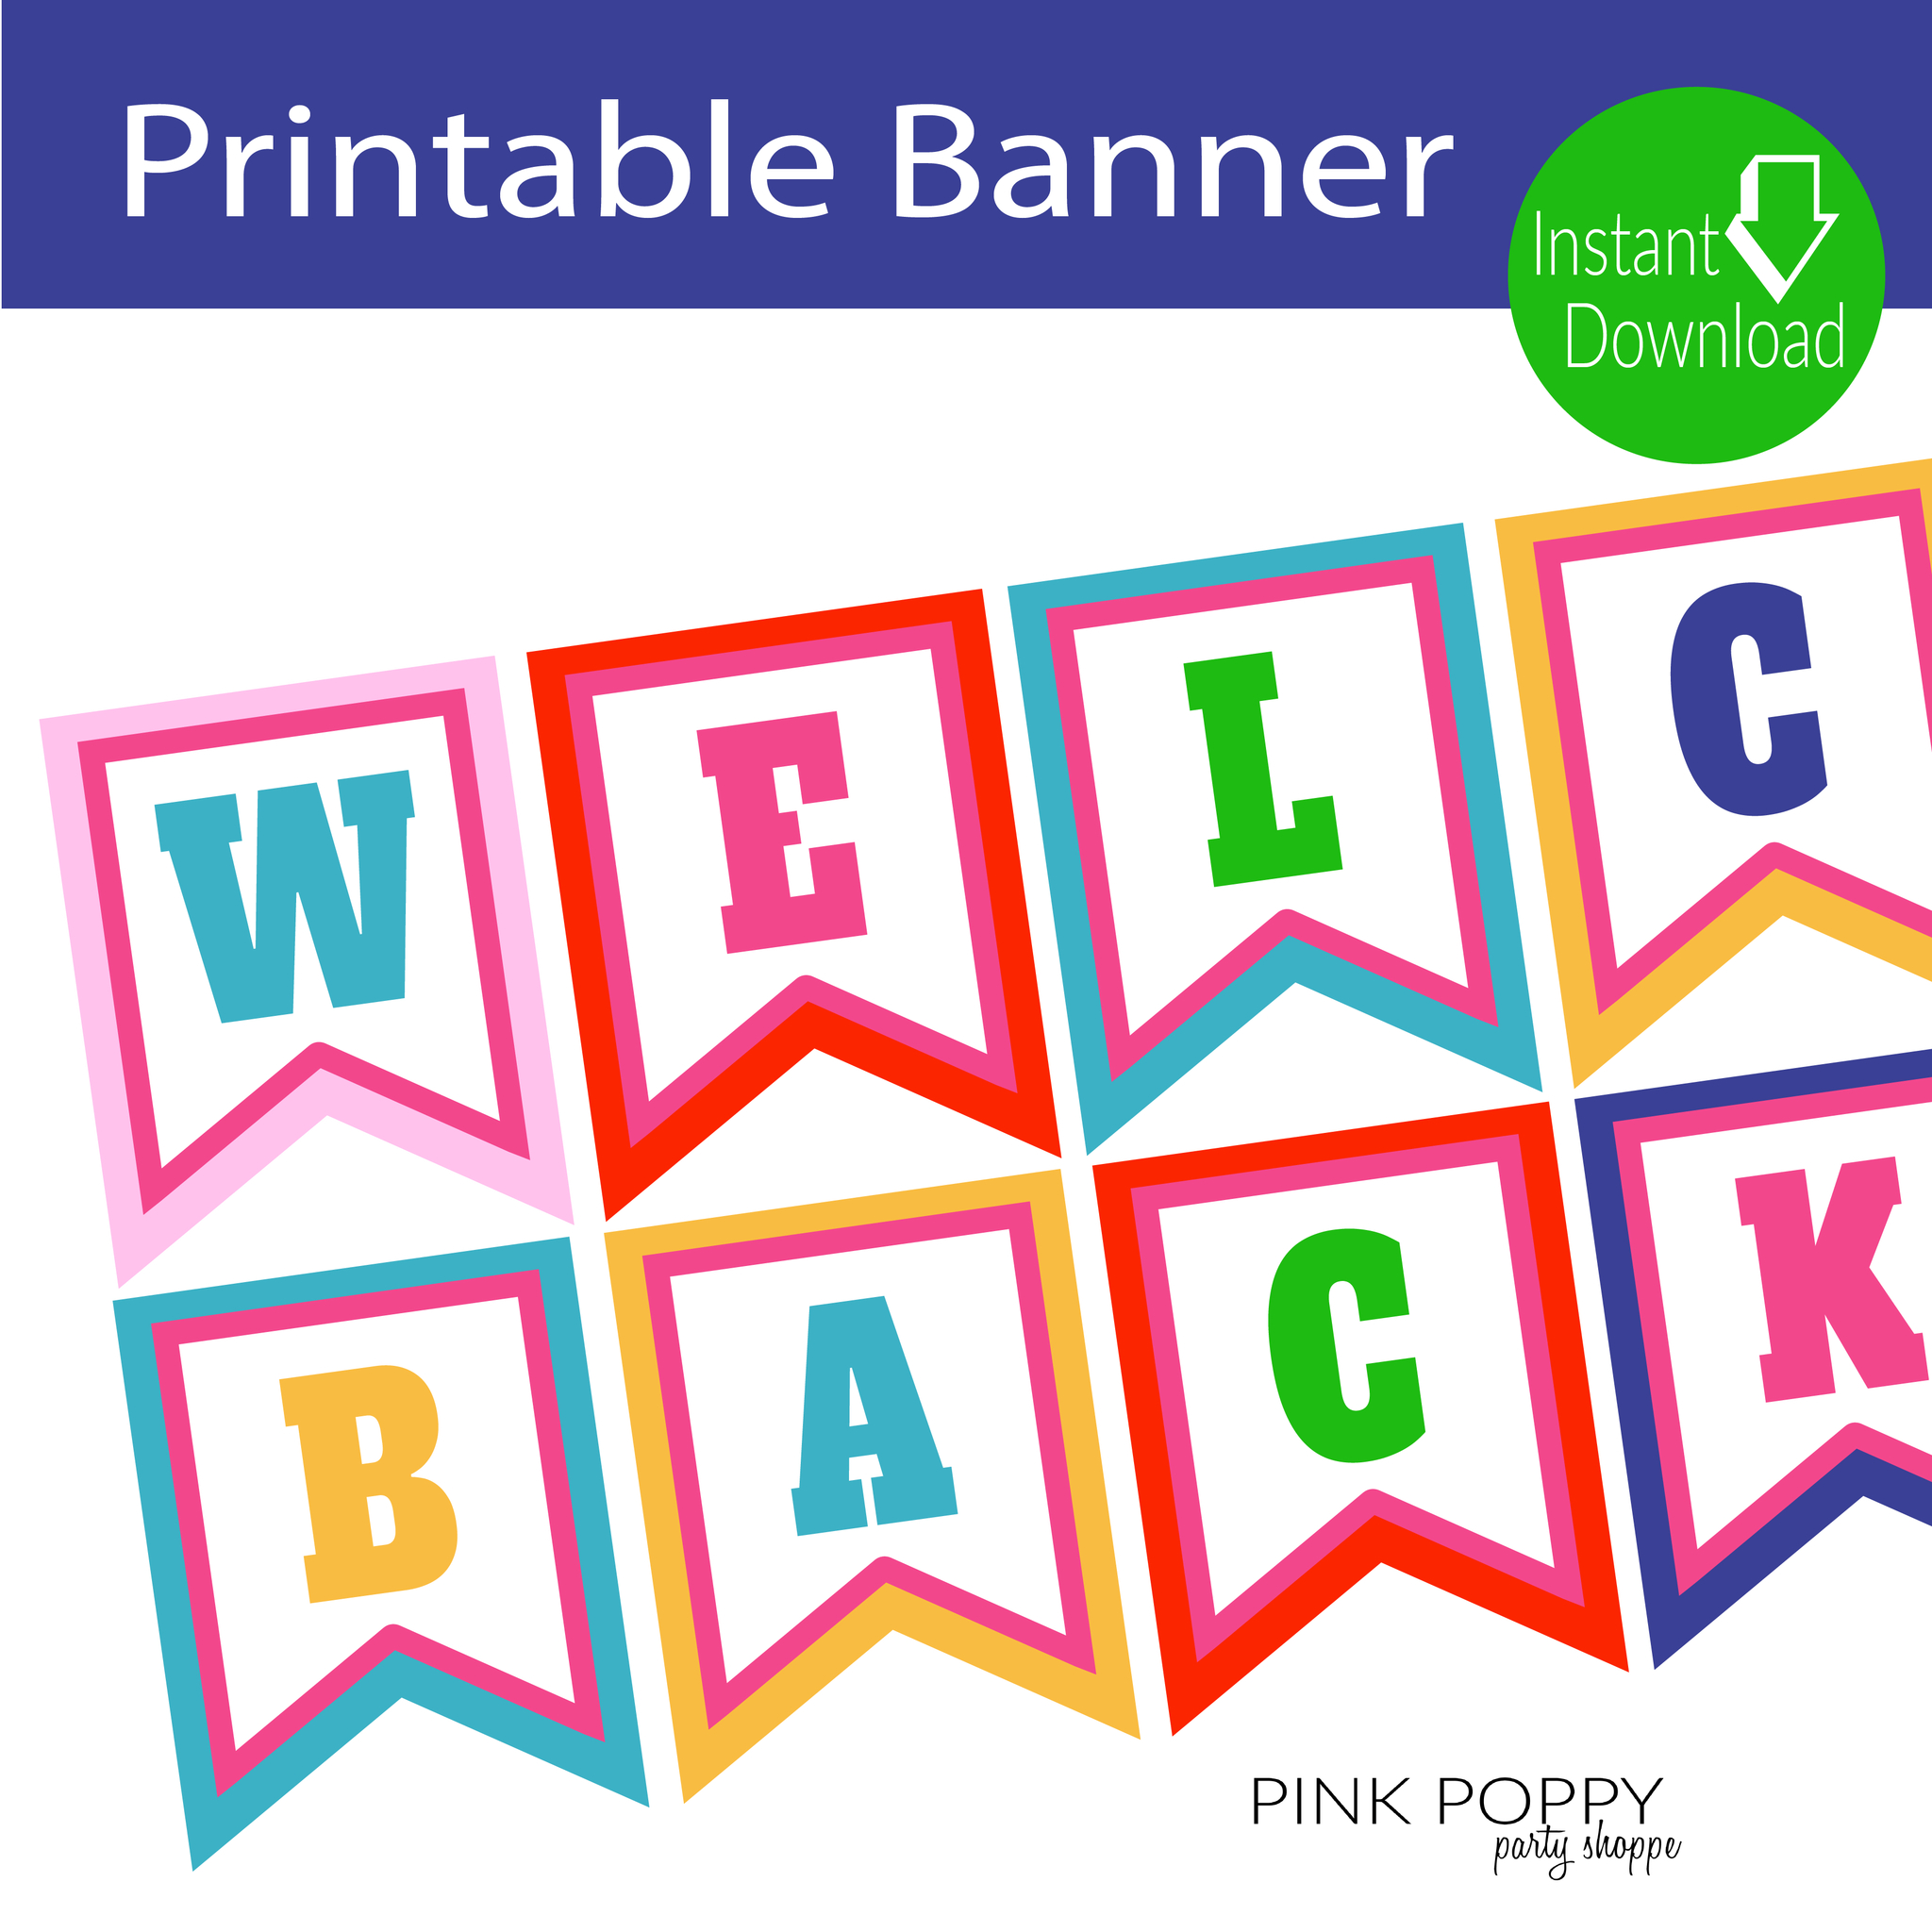 Free Printables} Welcome Back Banner | Shopify Merchant Community - Welcome Back Banner Printable Free